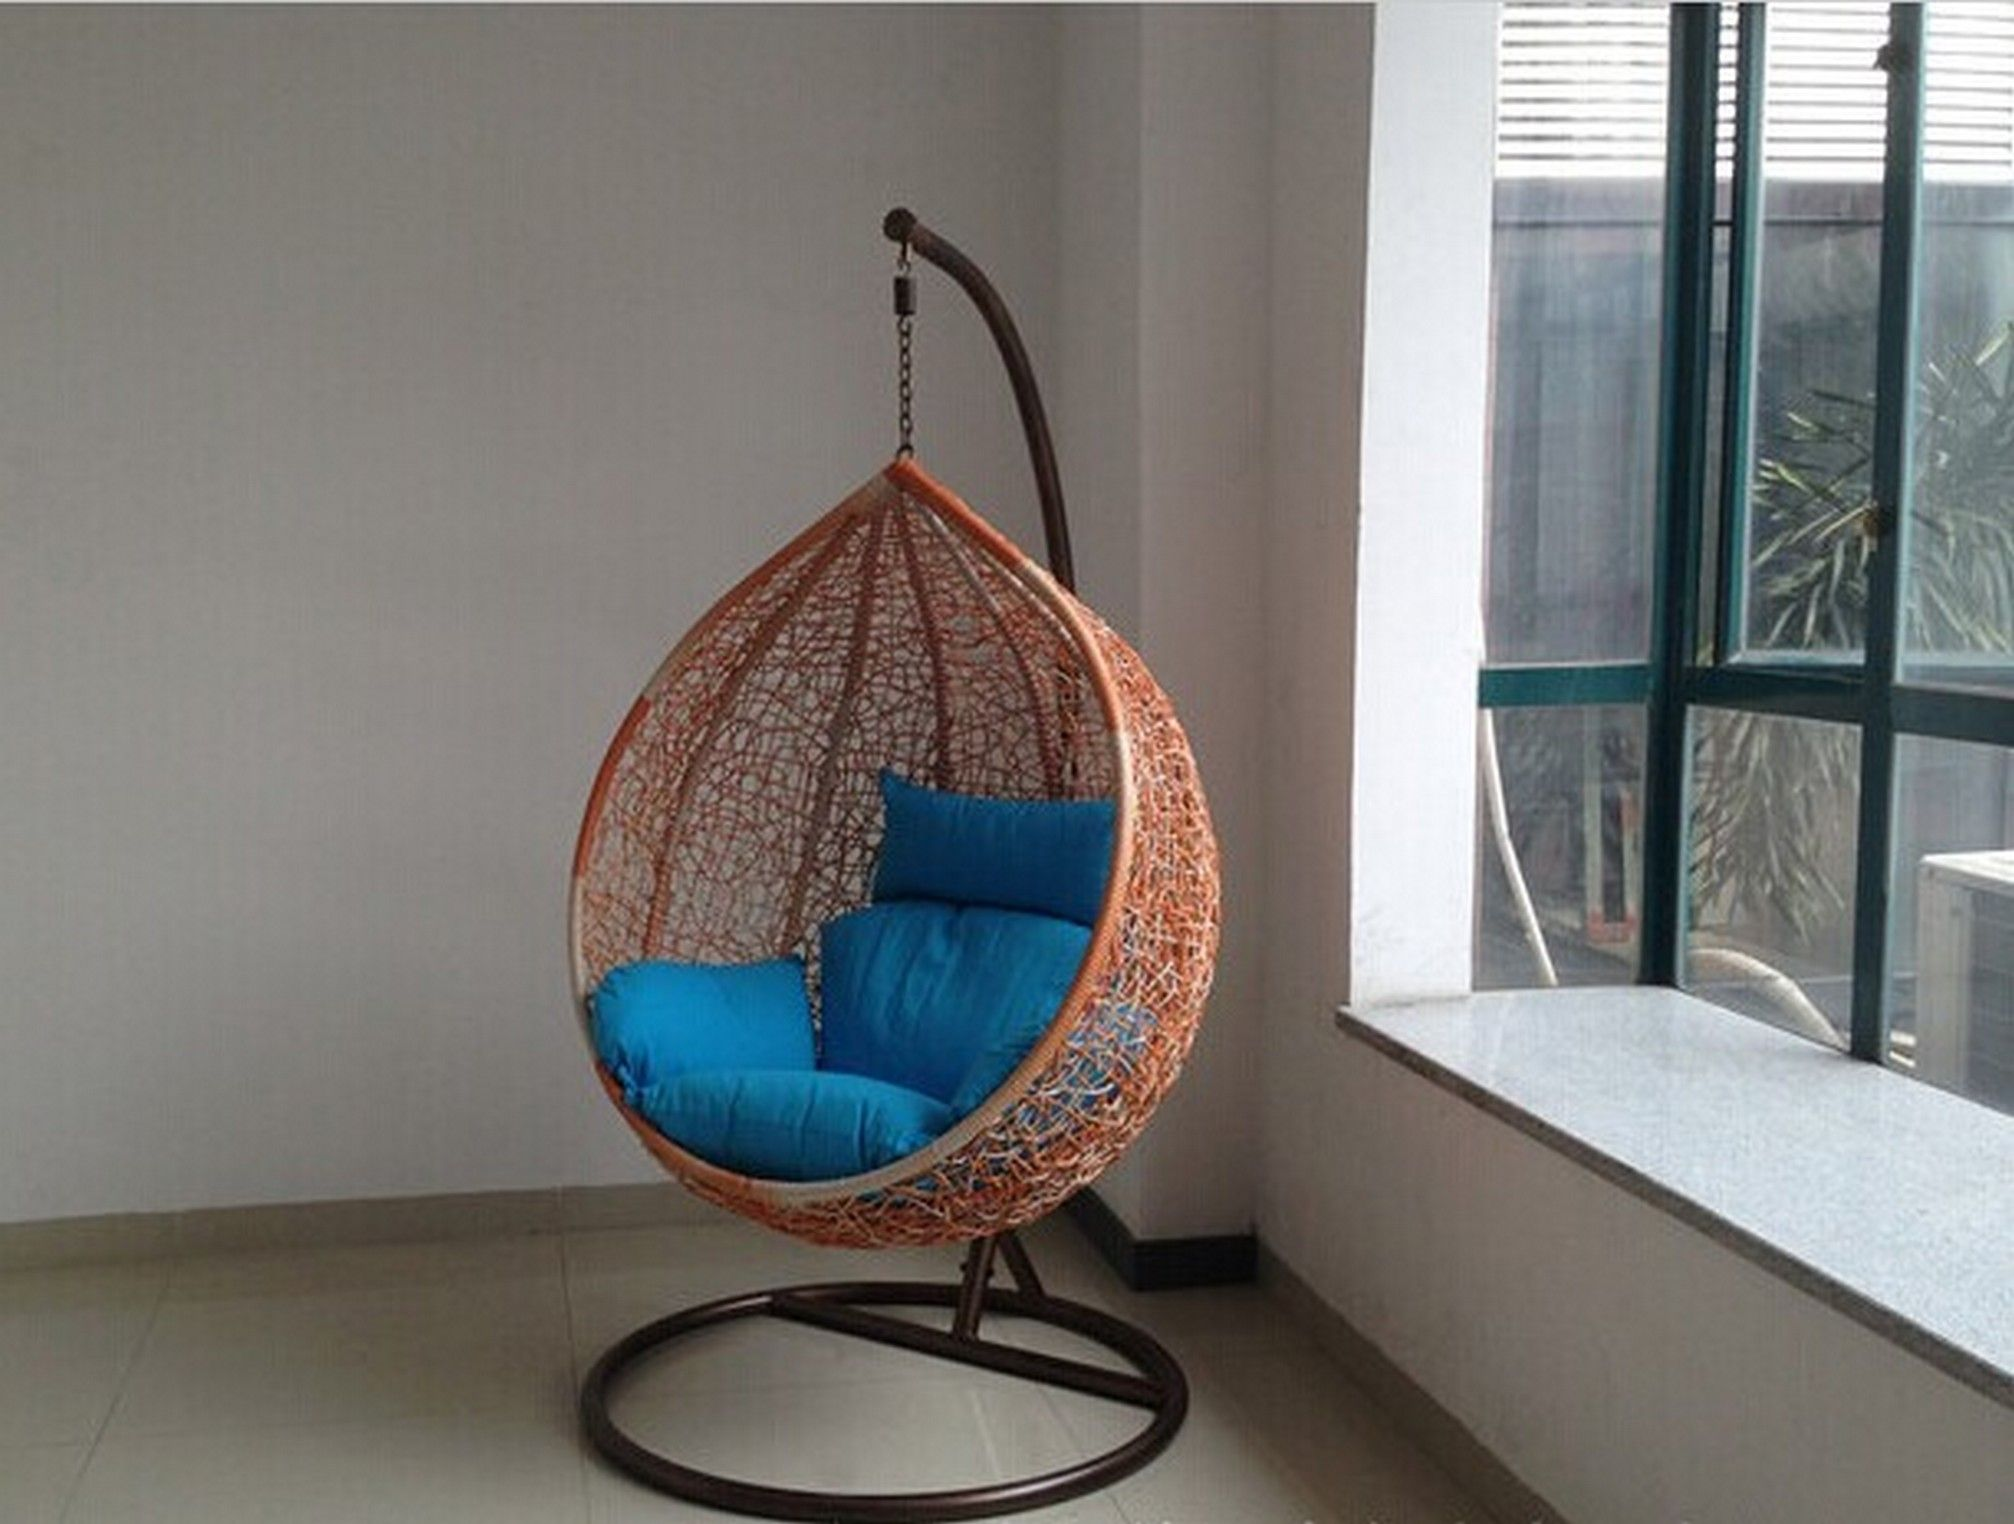 Pin by georgia mathews on indoor garden pinterest for Indoor hanging chair for bedroom